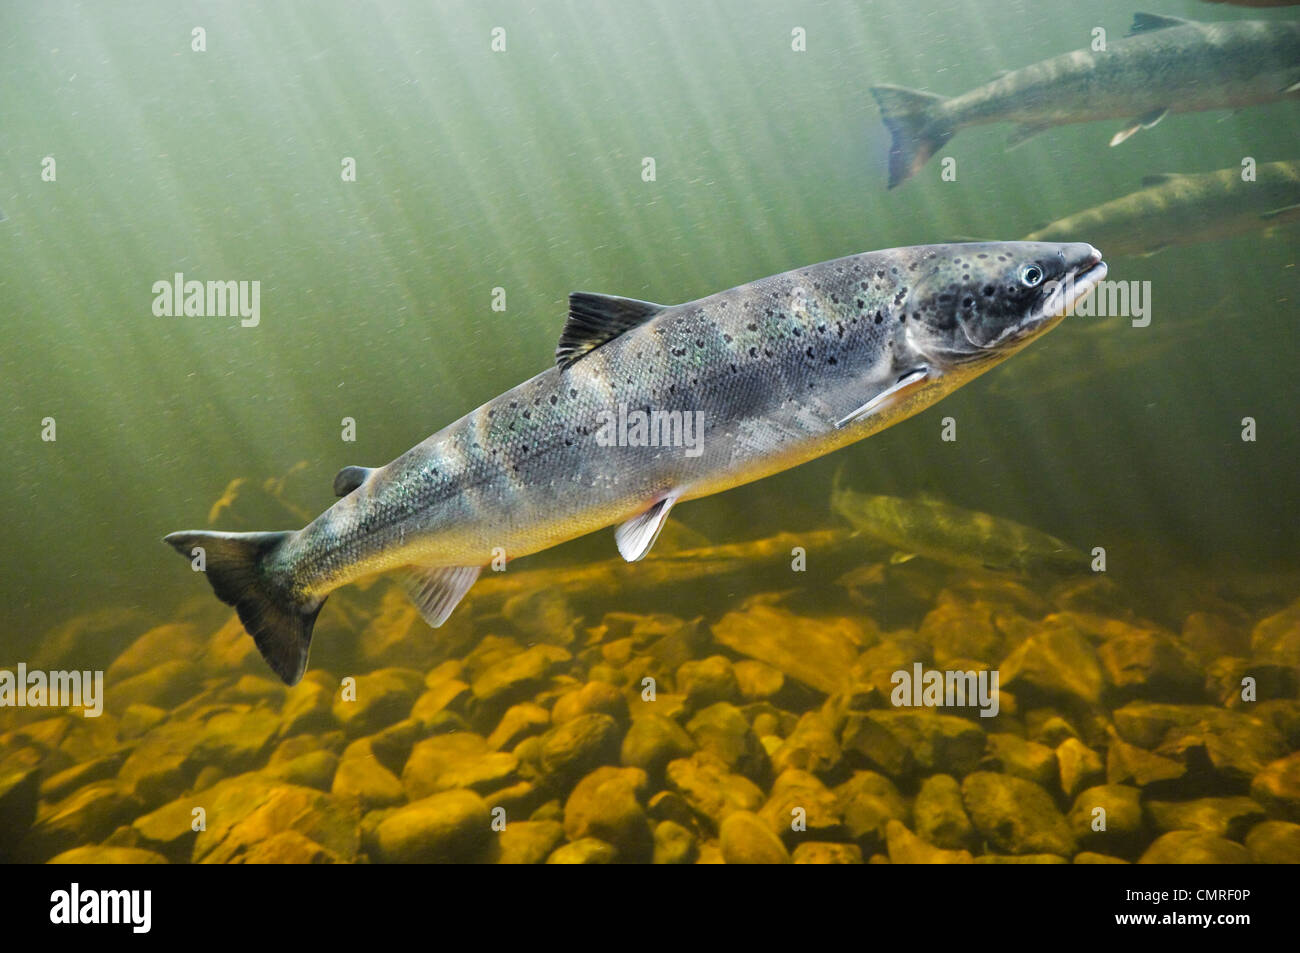 Atlantic Salmon migrate from salt water upstream to reach spawning grounds, Exploits River, NL - Stock Image